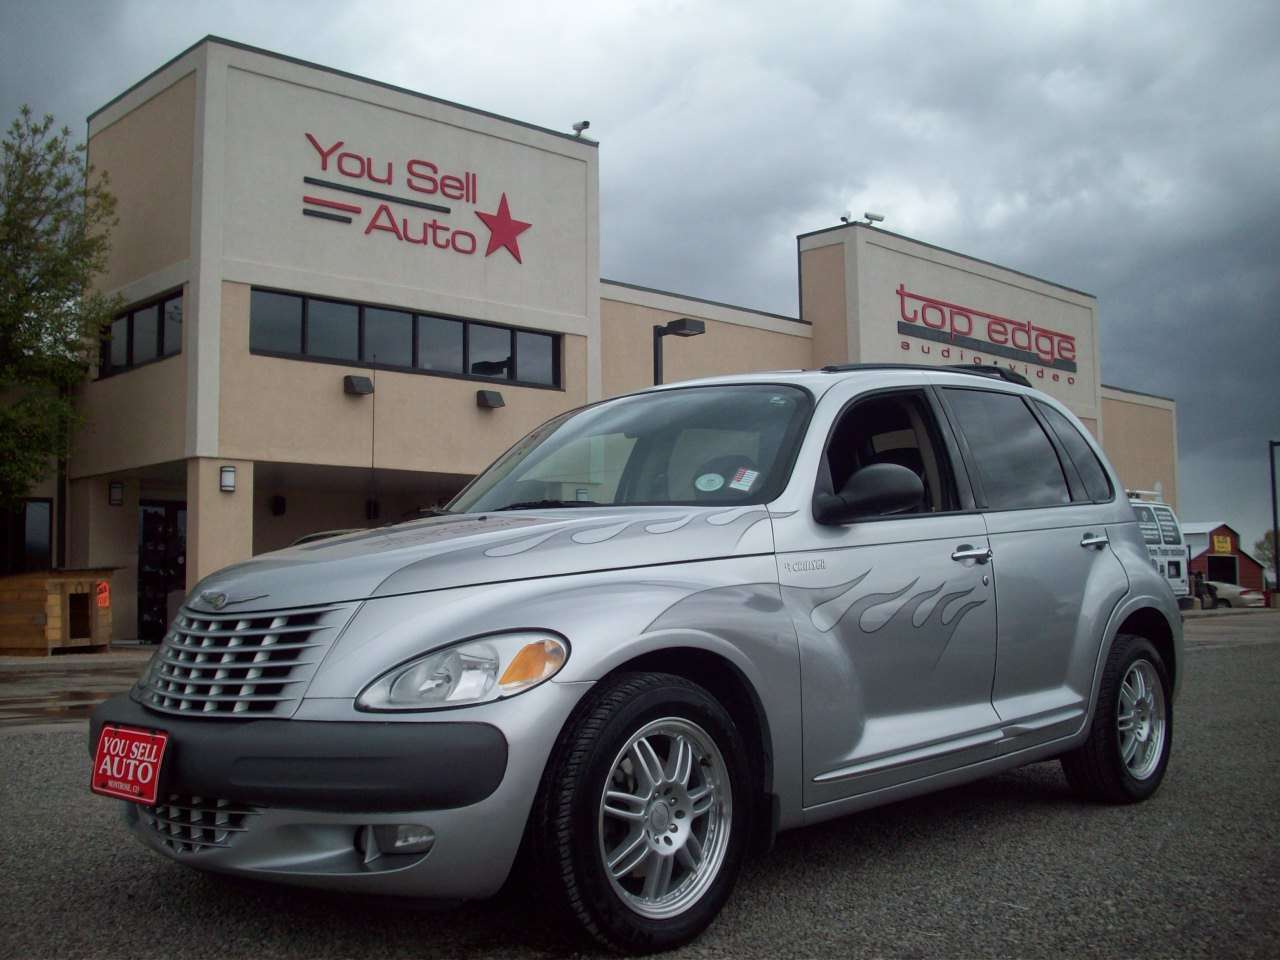 2002 chrysler pt cruiser limited edition sold you sell auto. Black Bedroom Furniture Sets. Home Design Ideas